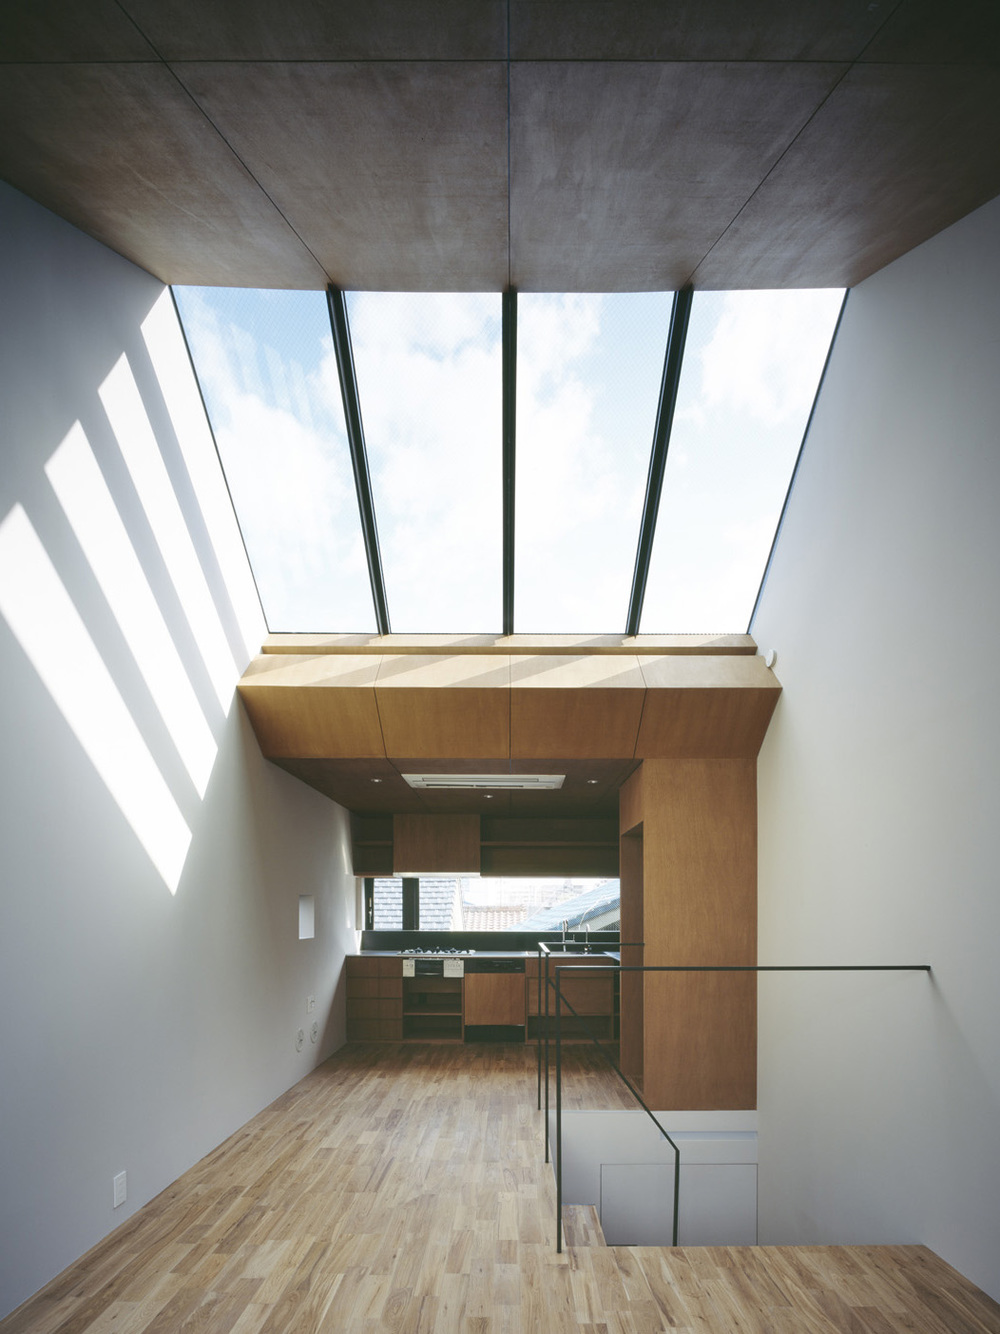 Nest is a minimalist residence located in Nagoya, Japan.